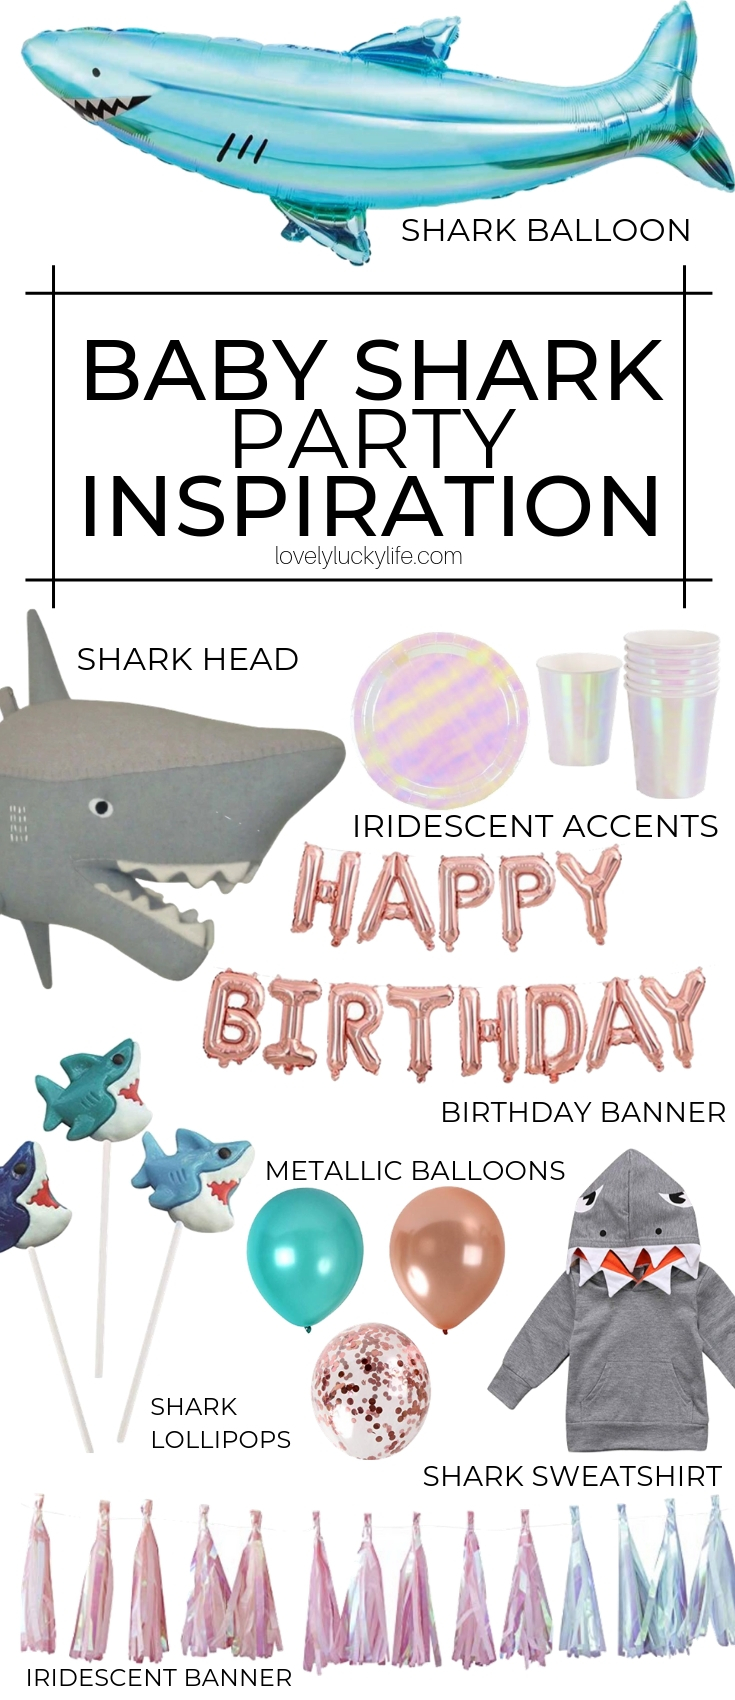 baby shark two two two two to two birthday party theme inspo for a 2nd birthday! baby shark birthday party theme board